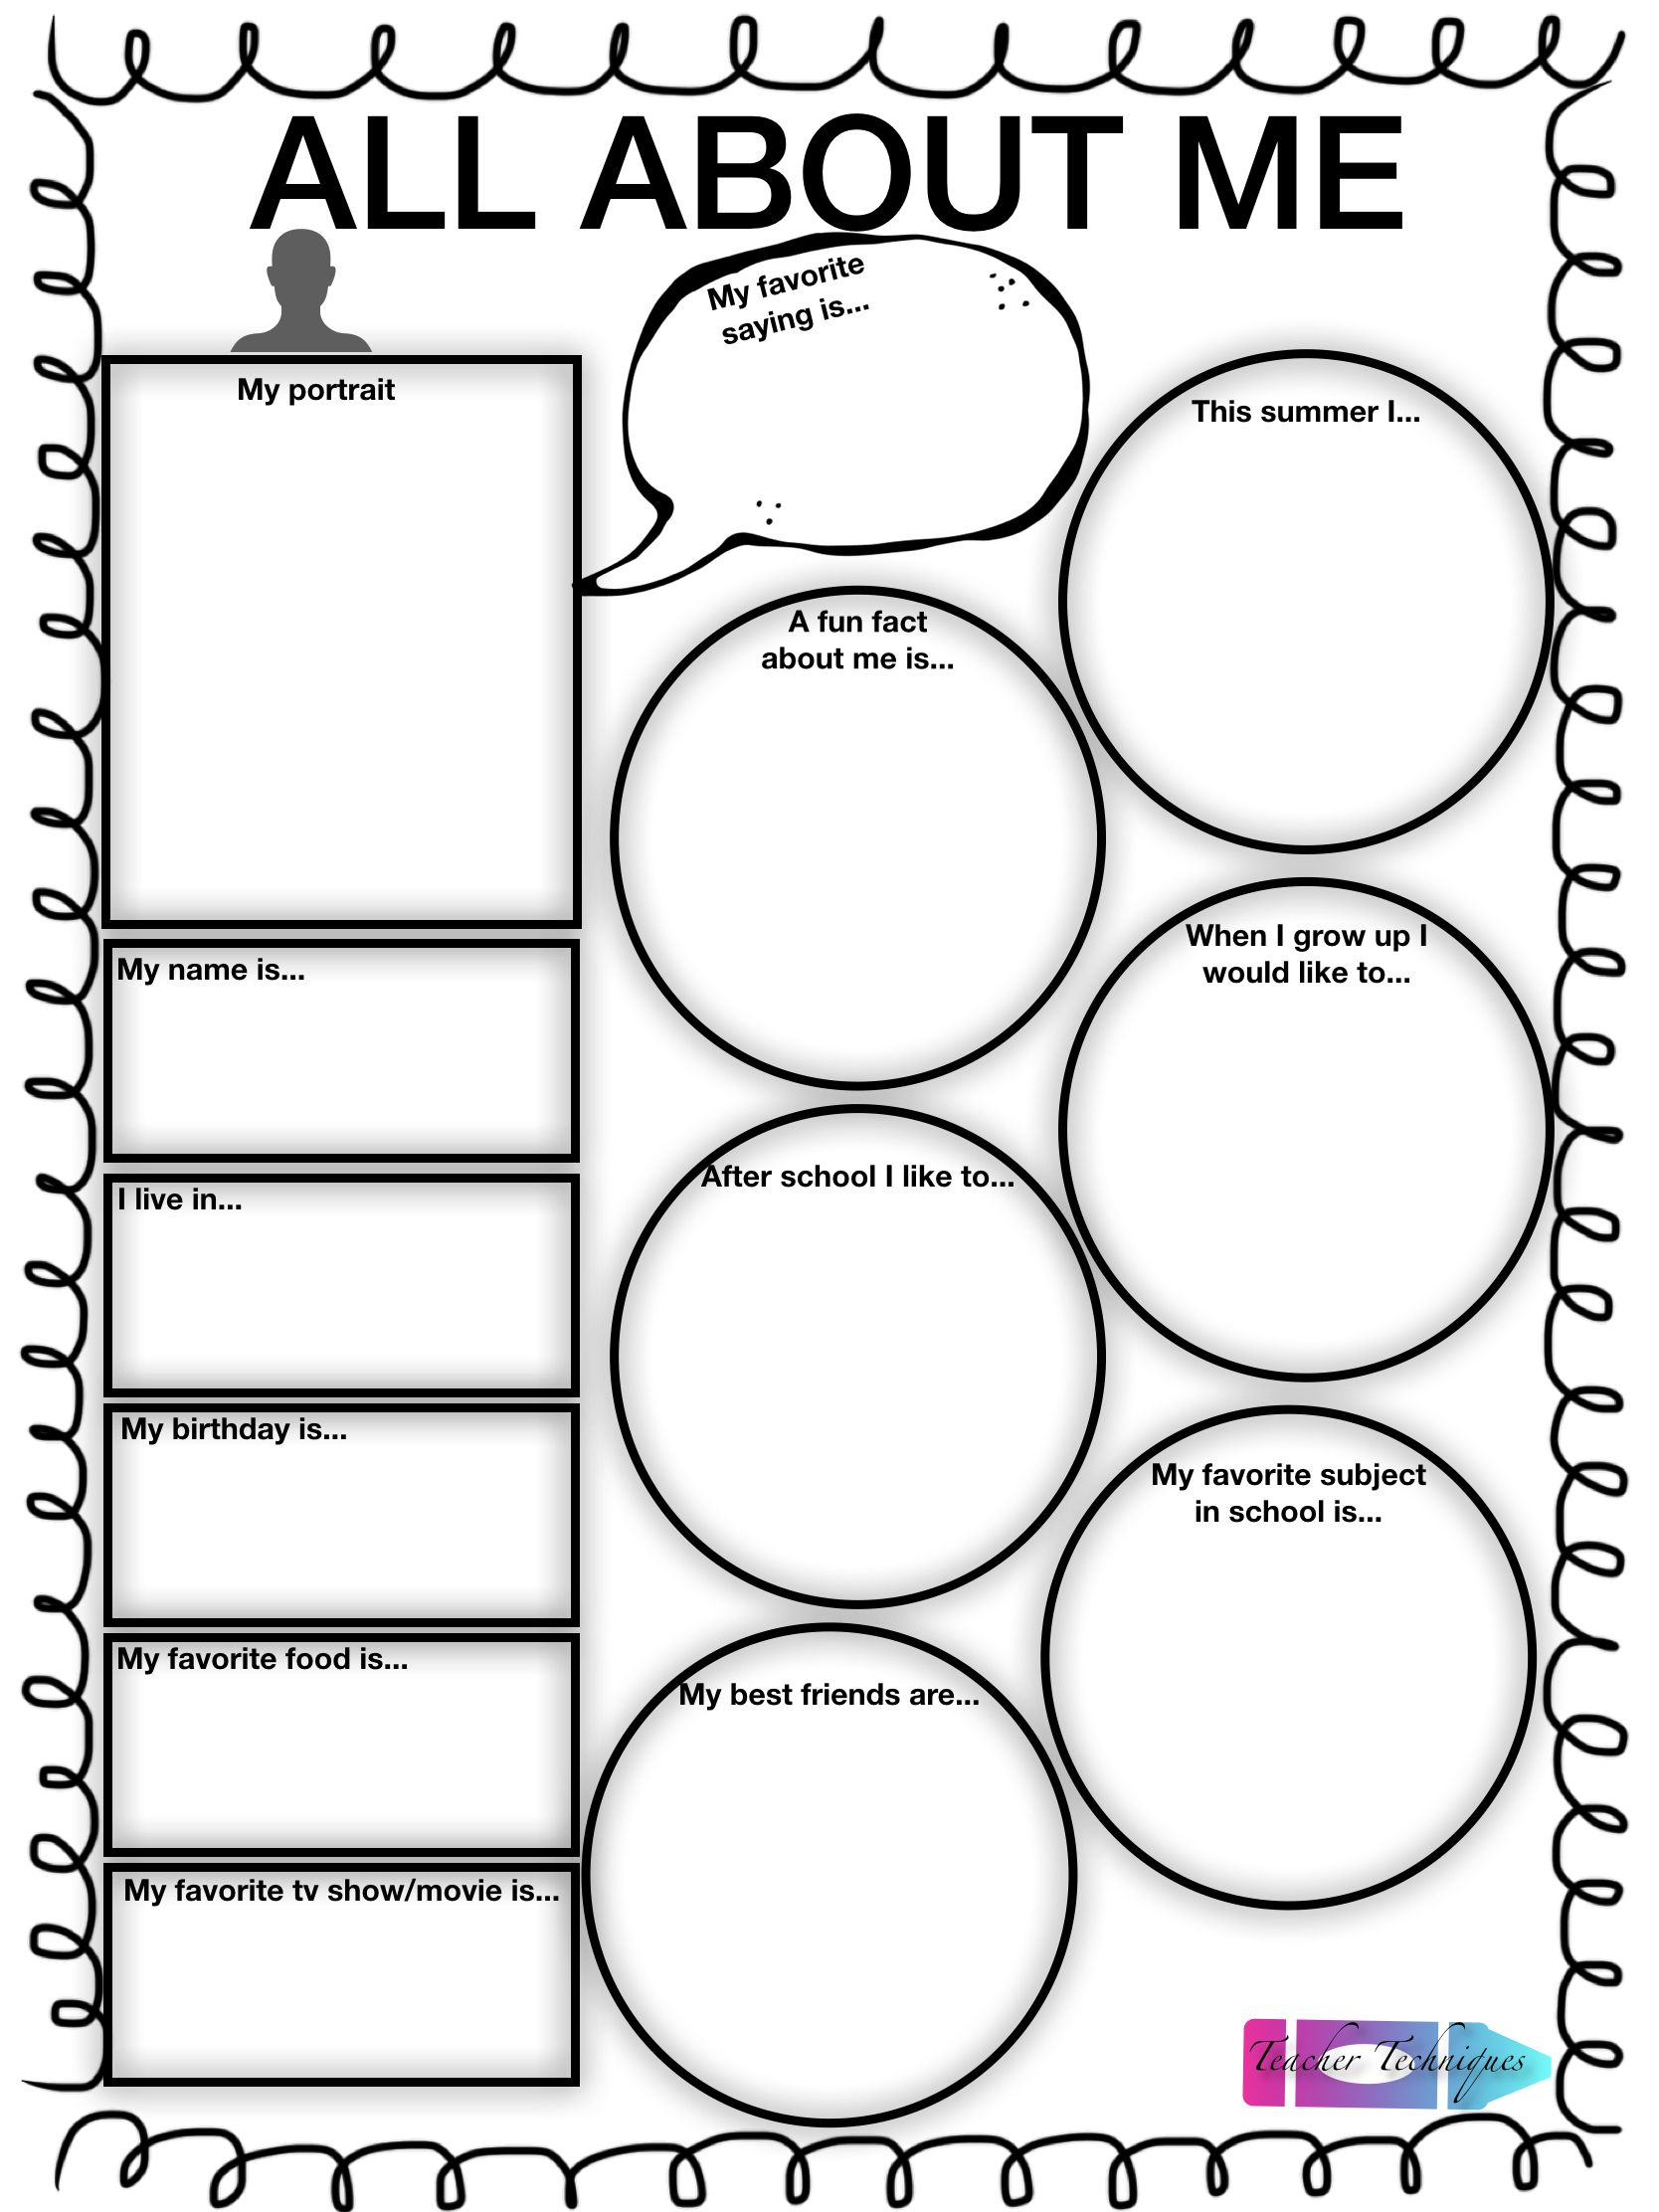 Predownload: All About Me Worksheet Math About Me Graphing Worksheets Kids Math Worksheets [ 2224 x 1668 Pixel ]